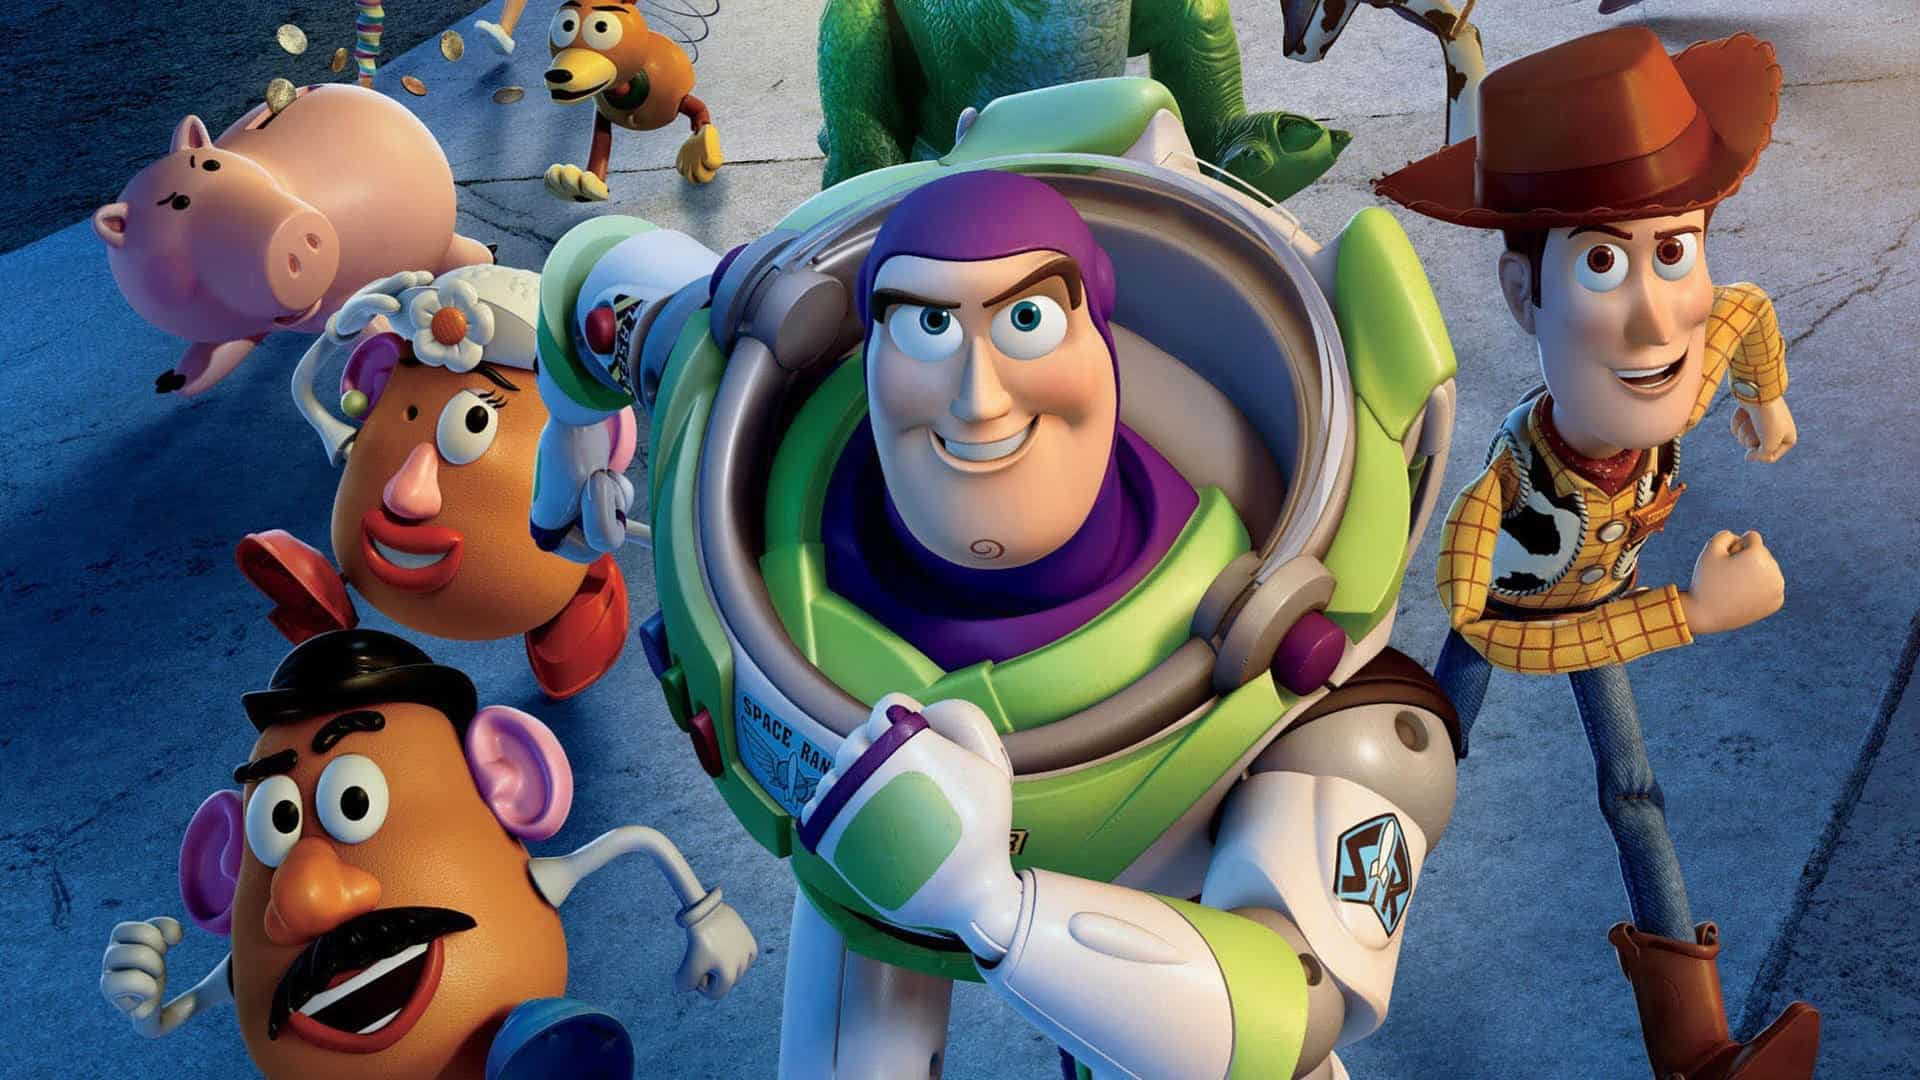 'Toy Story 4' set for 2017